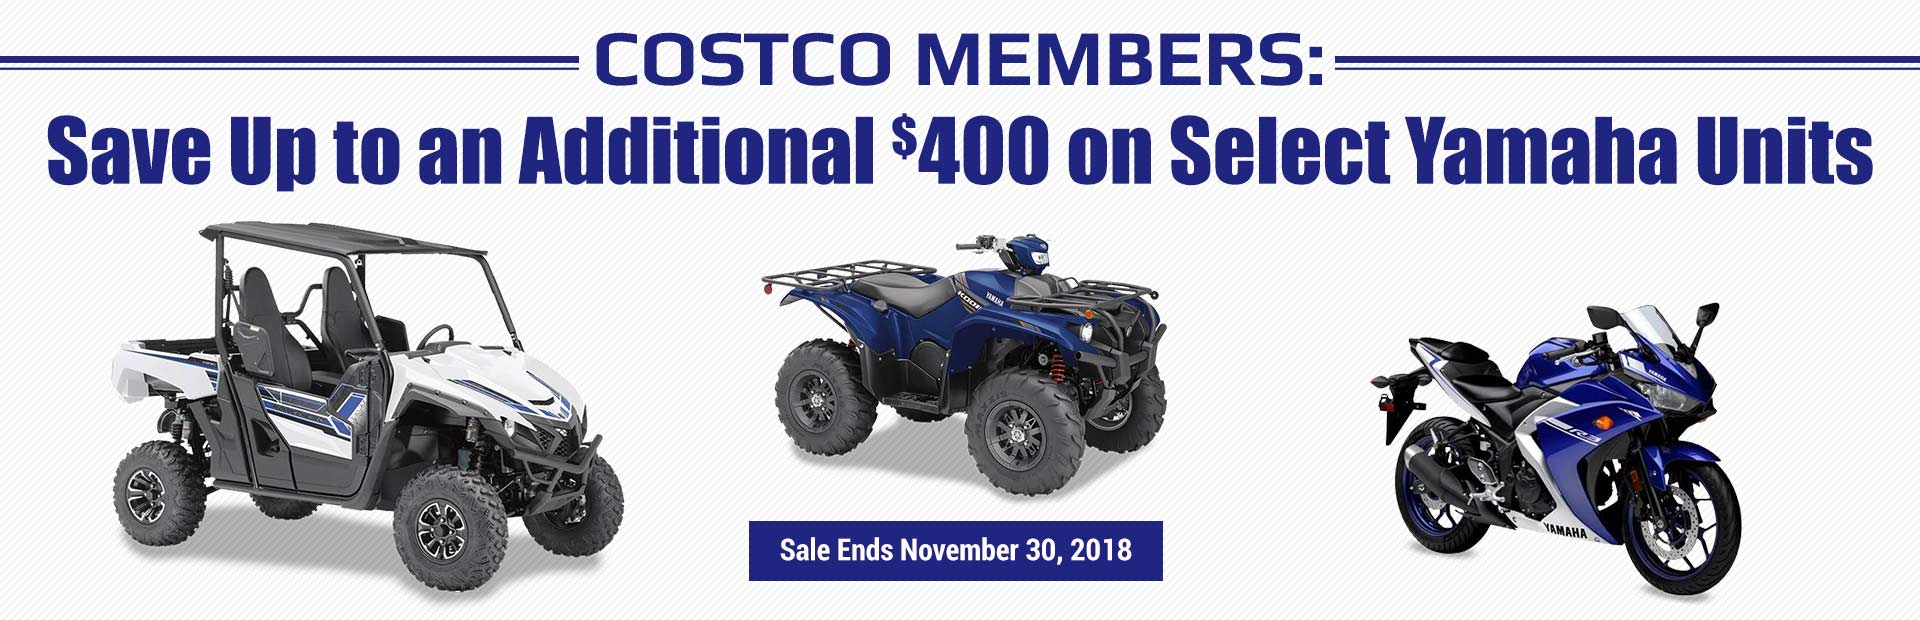 Costco Members: Save up to an additional $400 on select Yamaha units! This sale ends November 30, 2018.